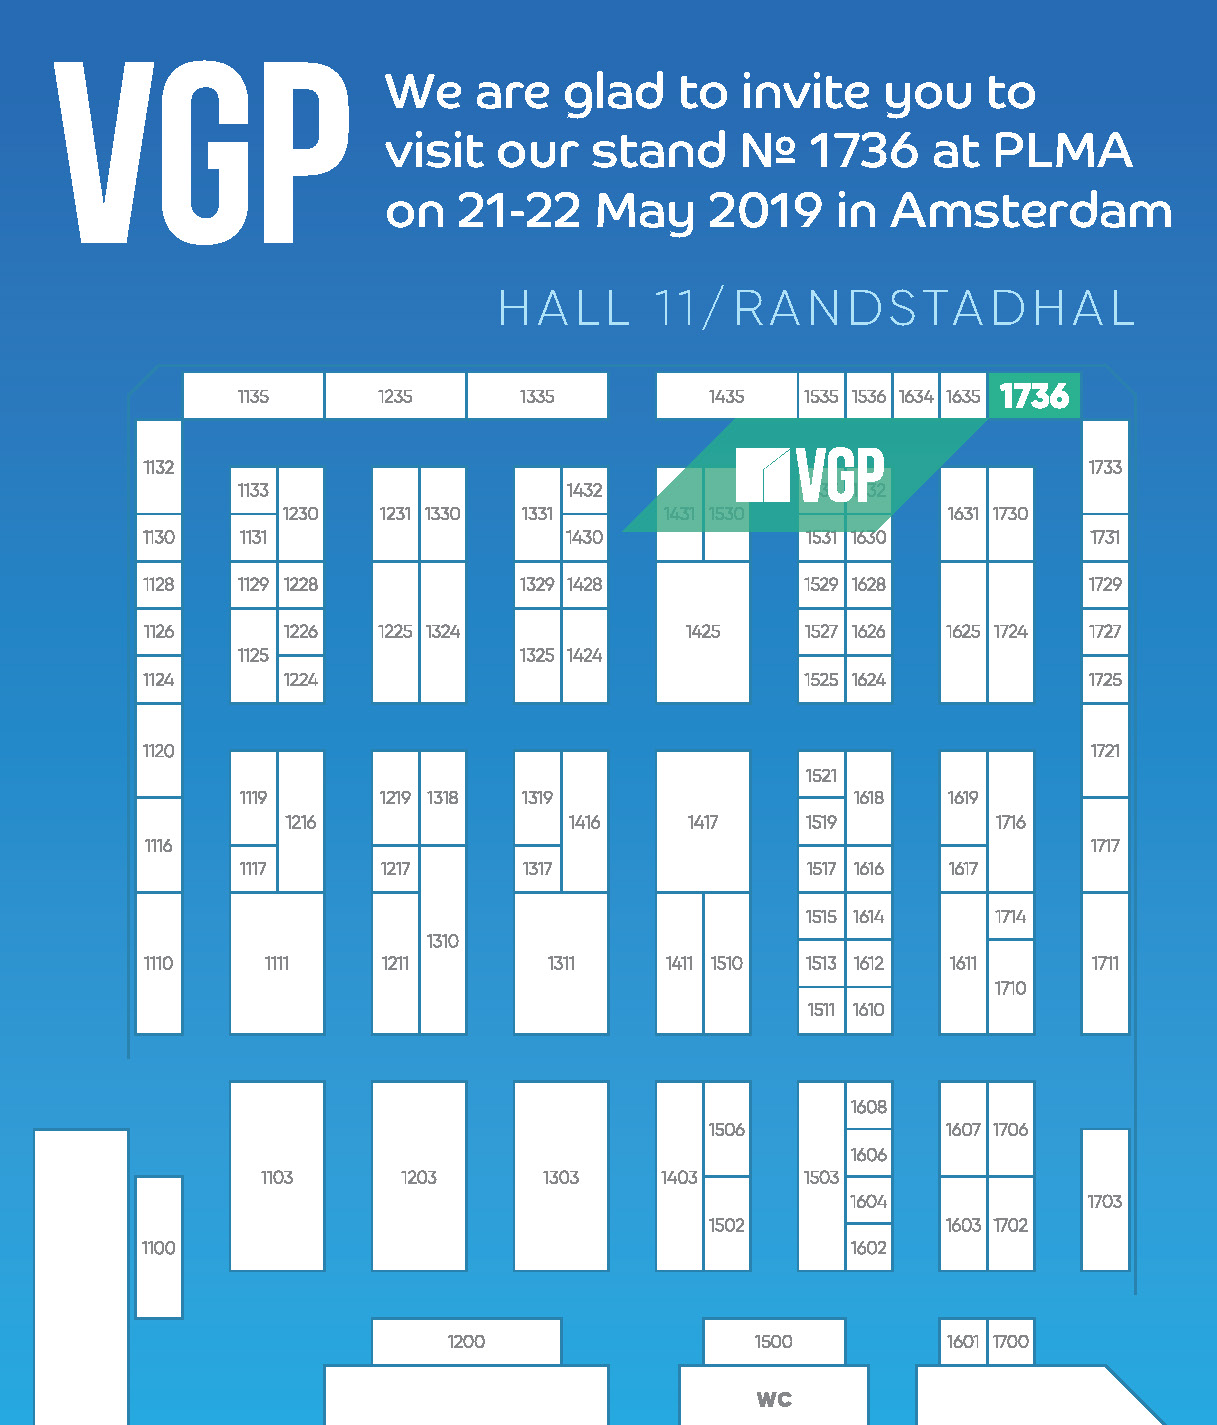 Participation of the VGP Company in the International Exhibition PLMA 2019 in Amsterdam